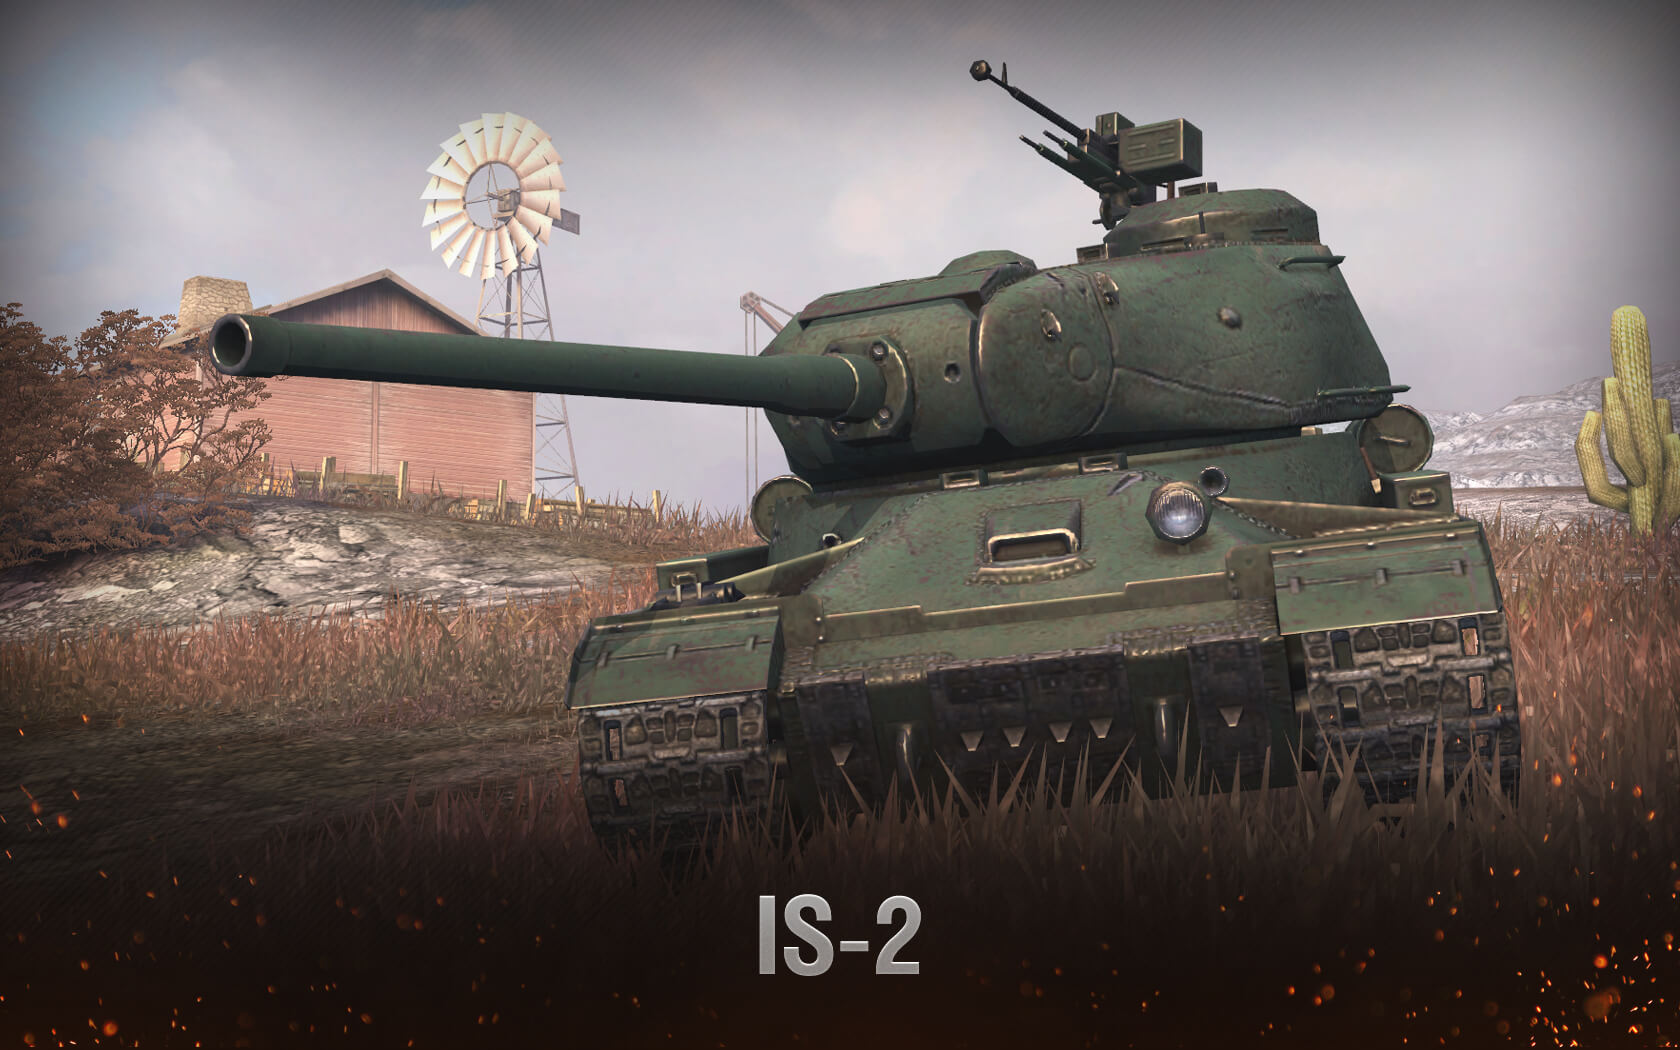 is-2-article.jpg